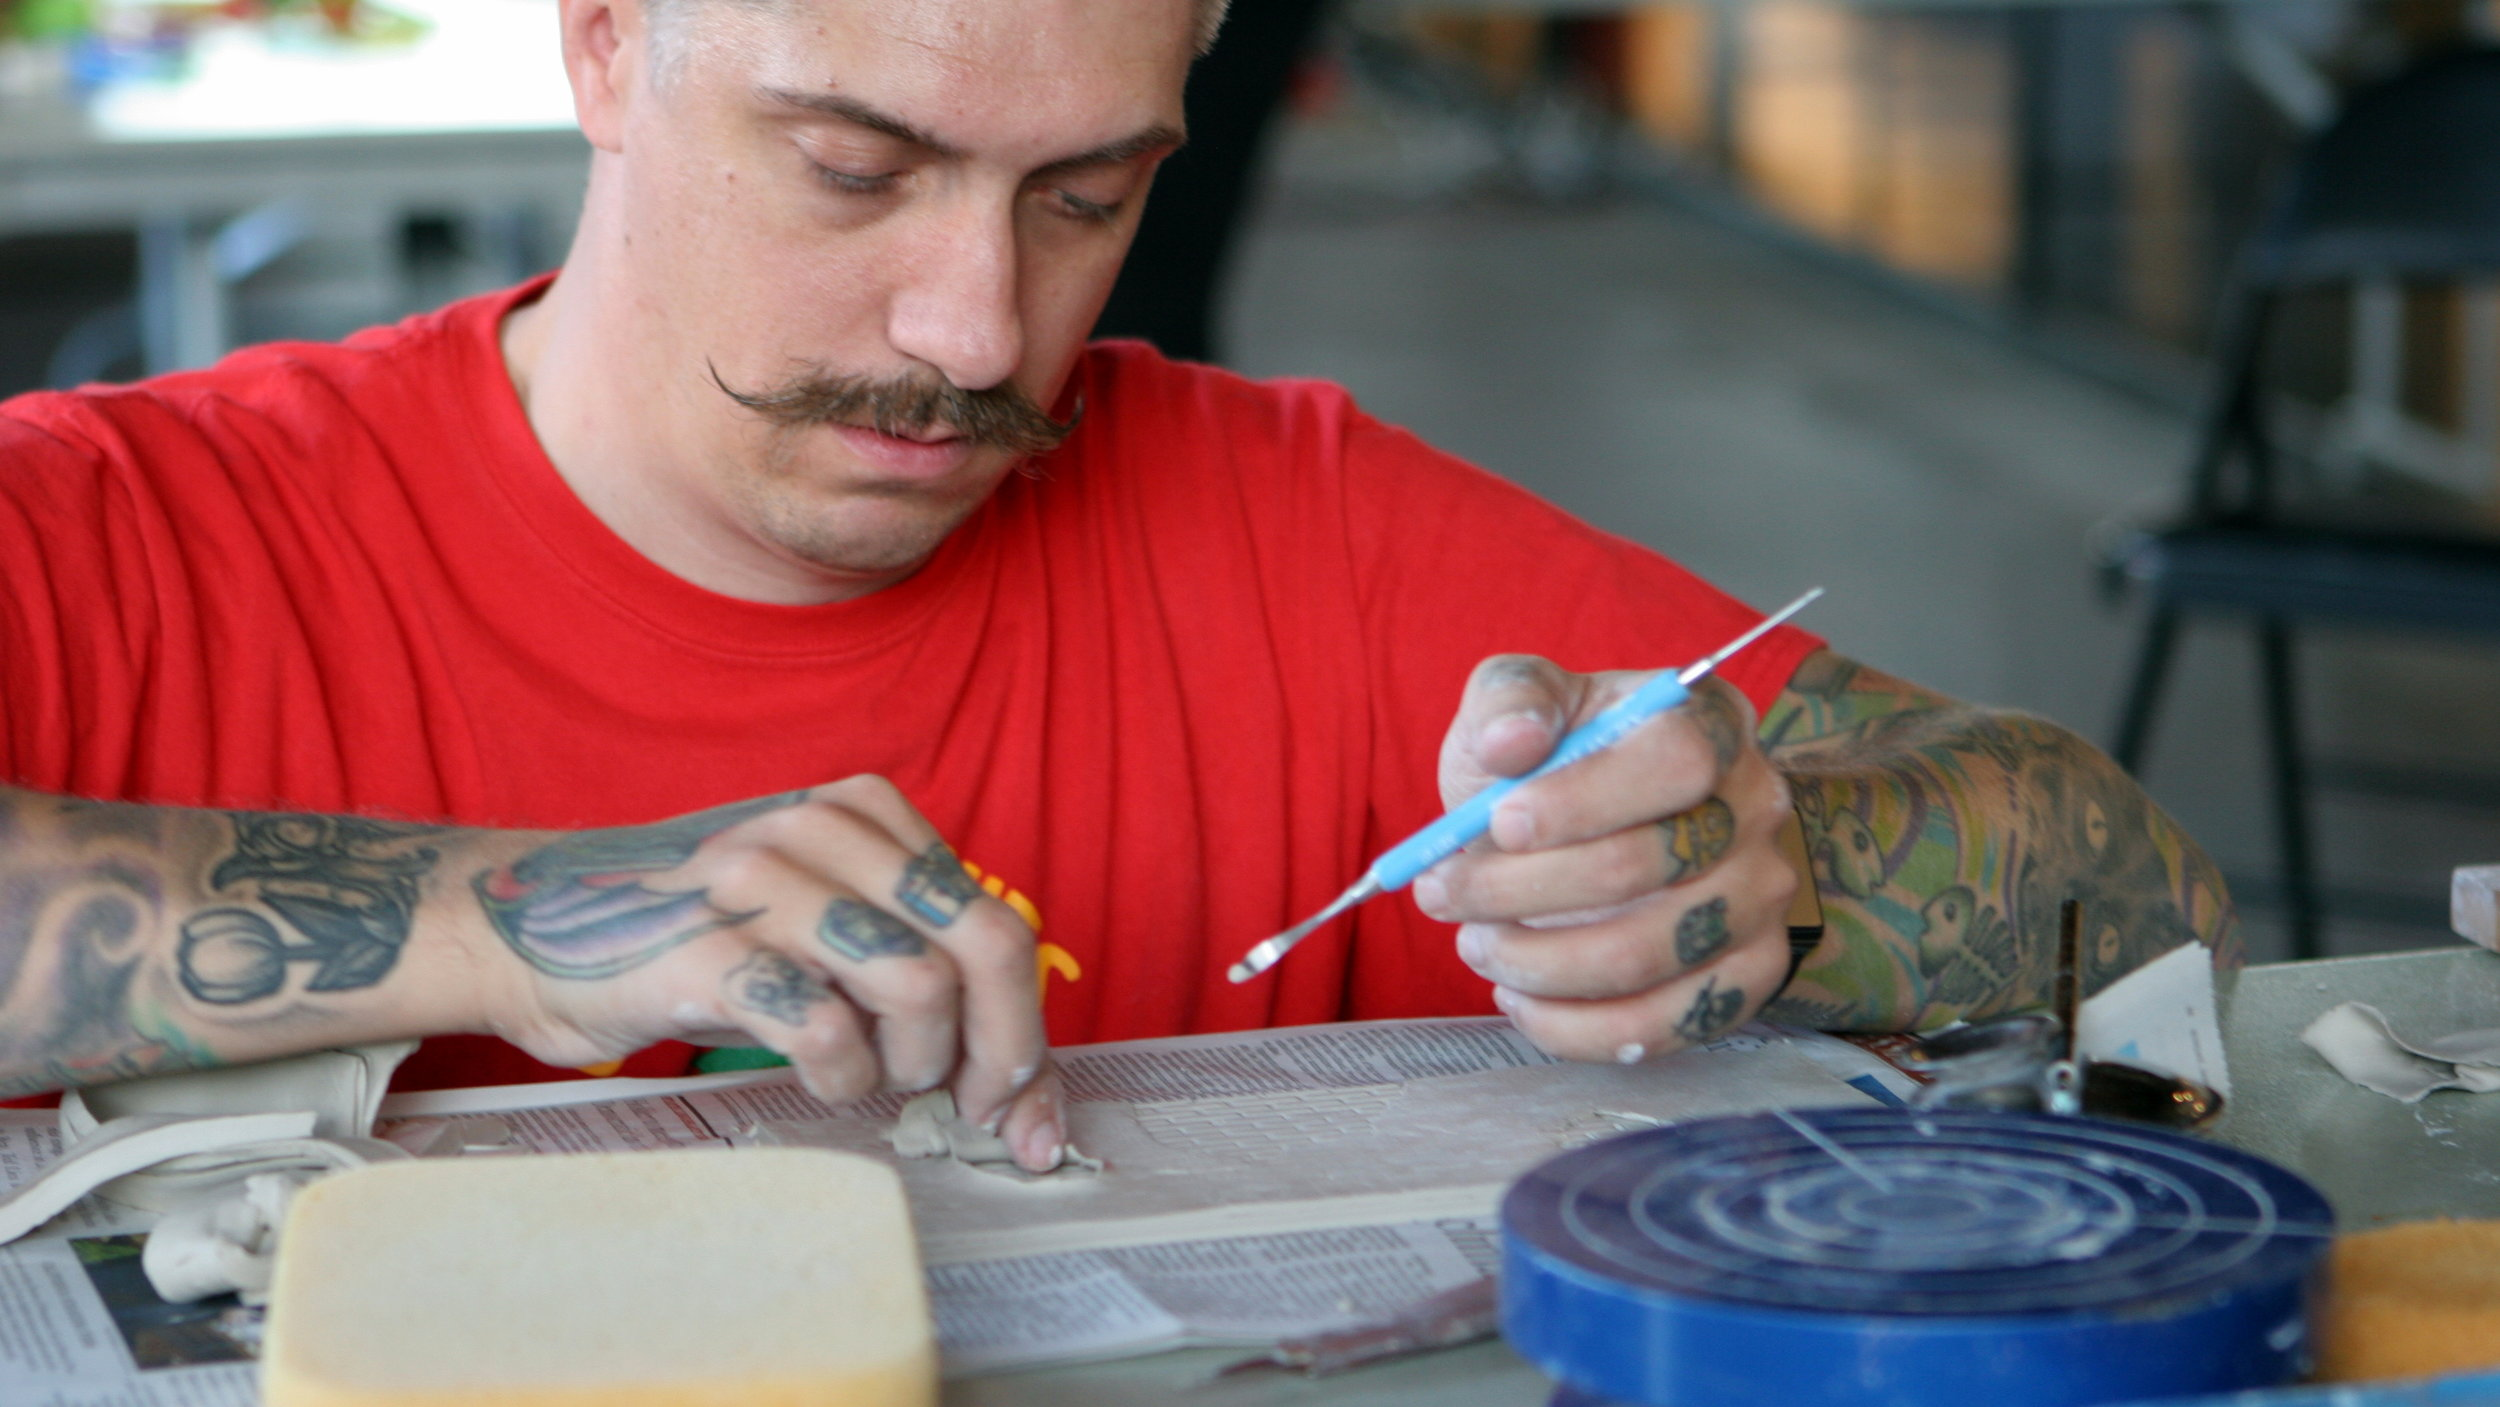 Michael working by hand on some small details.